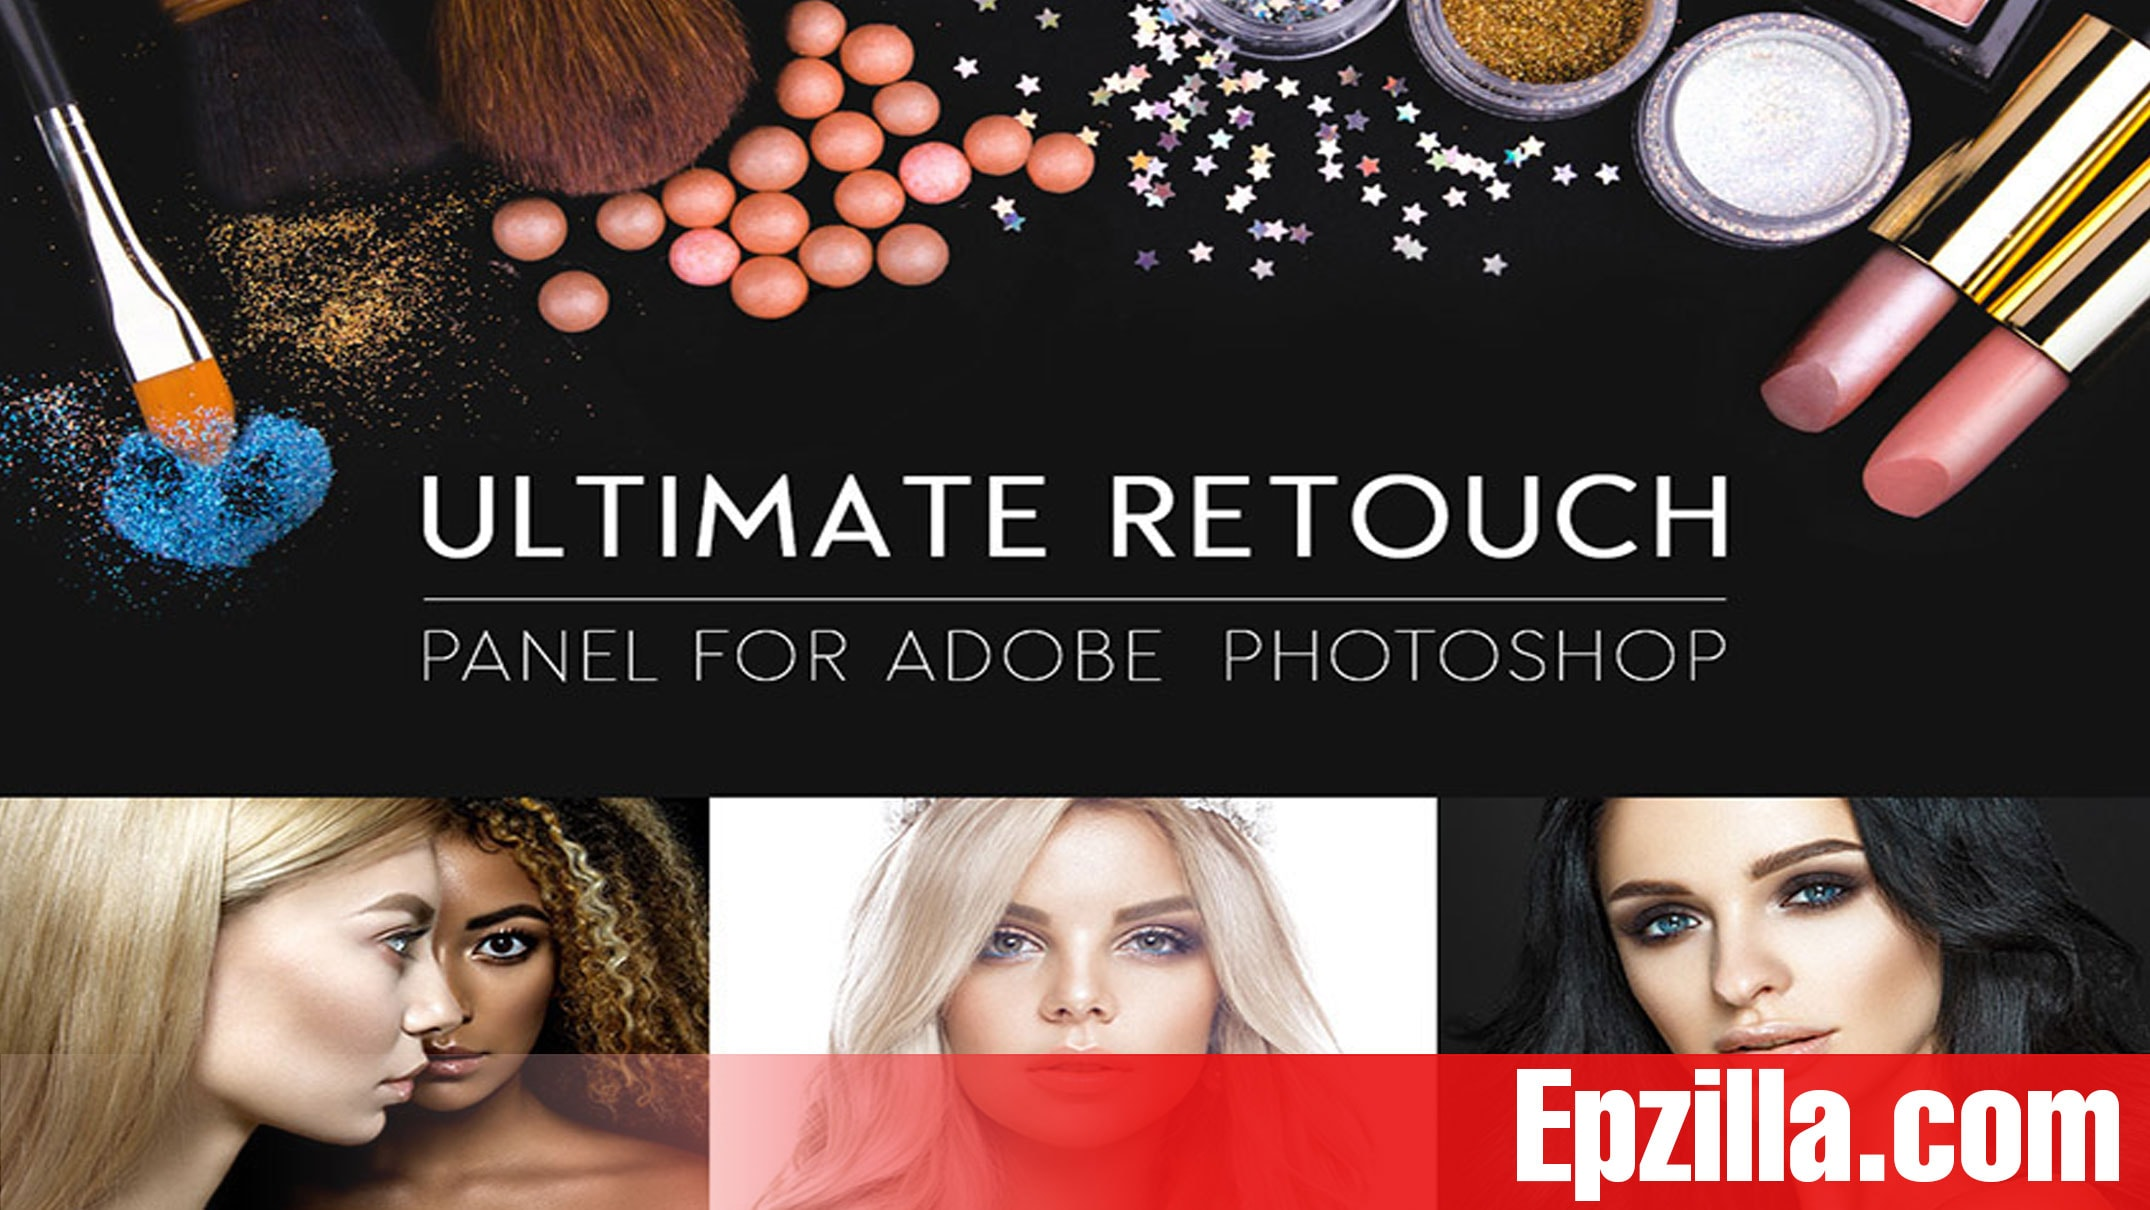 Ultimate-Retouch-Panel-3.7.72-Plugin-for-Adobe-Photoshop-Free-Download-Epzilla.com